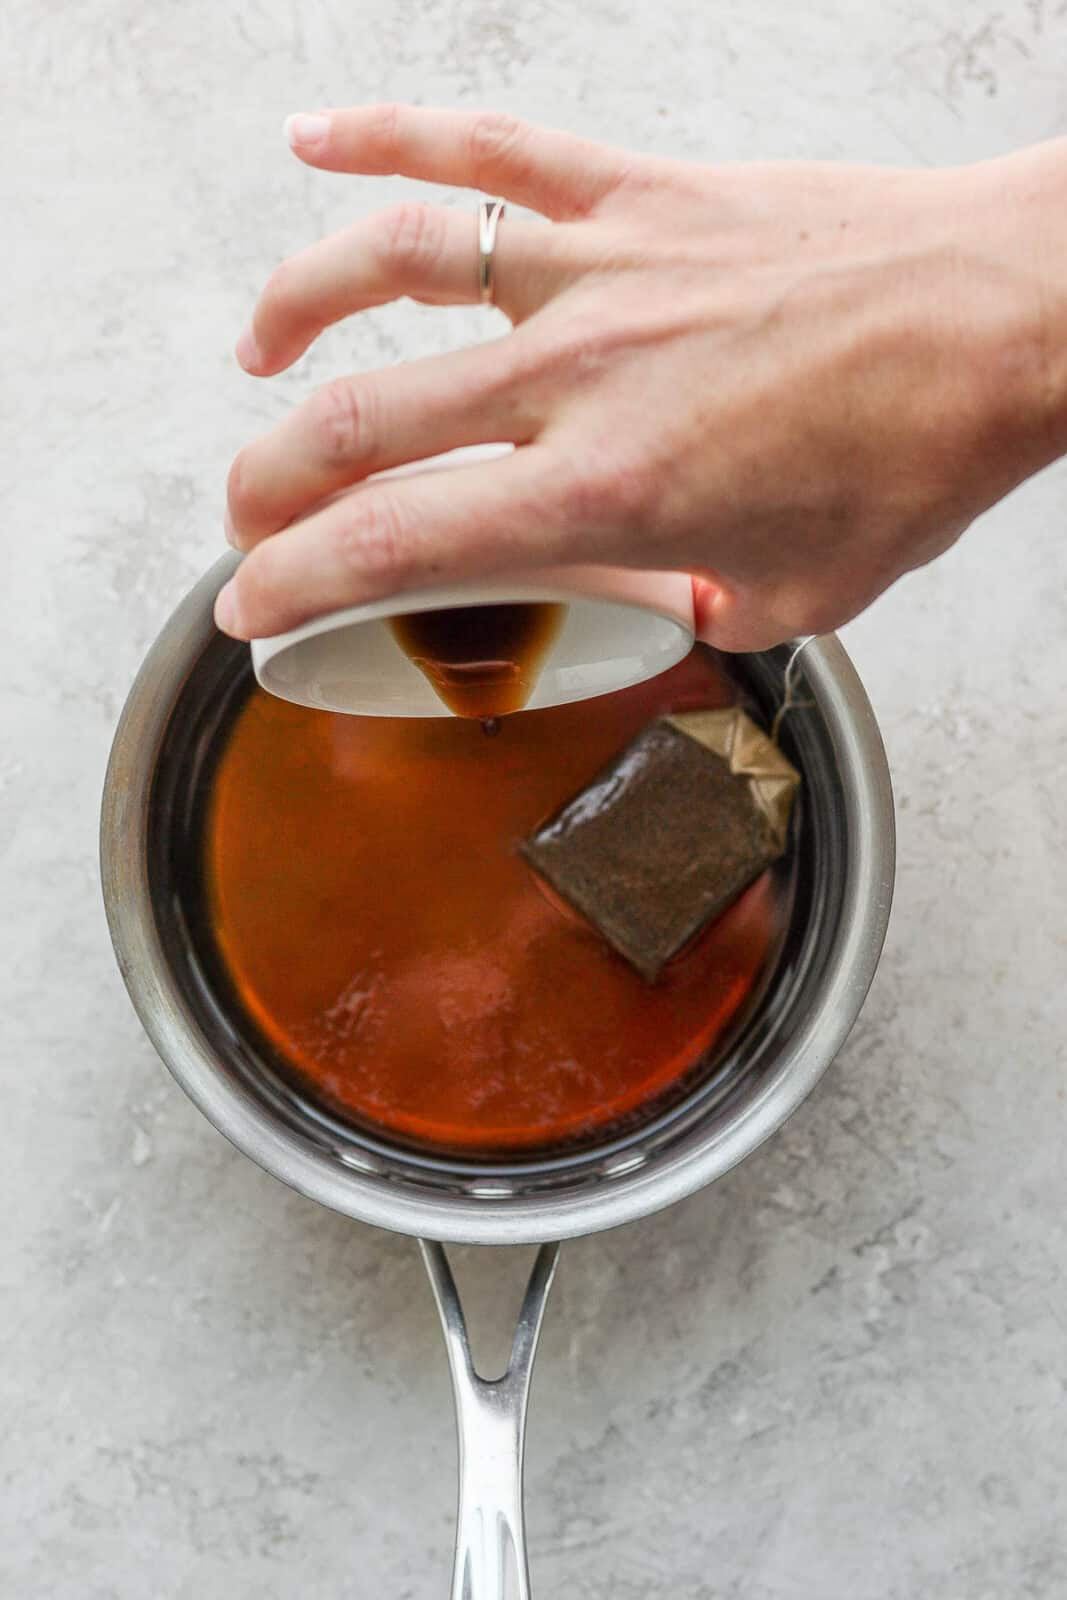 Adding maple syrup and vanilla to earl grey tea steeping in a small saucepan.